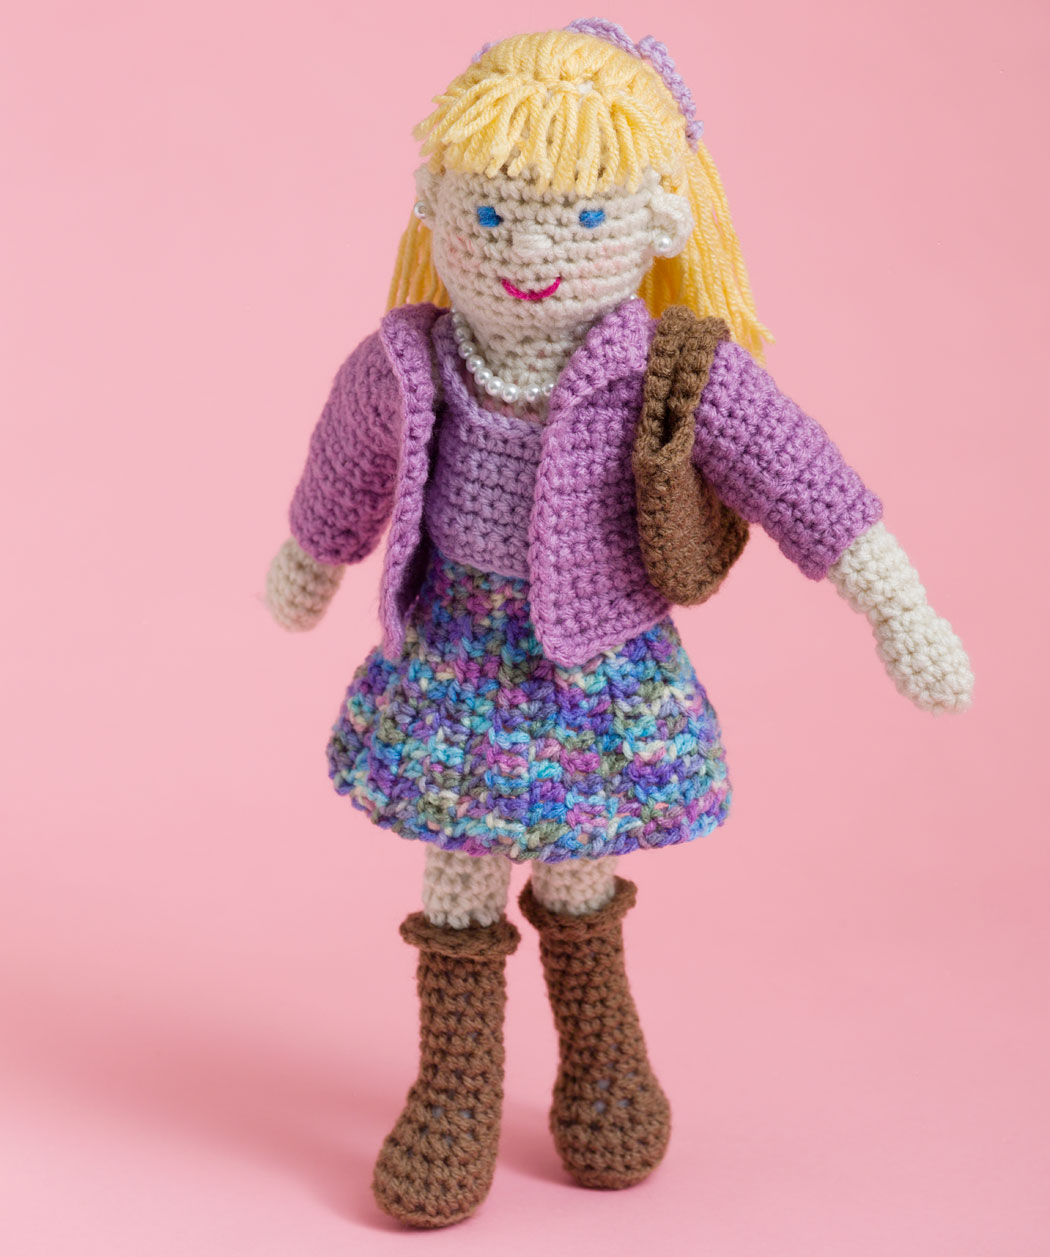 Basic Crochet Doll Pattern Free : Free Crochet Doll Patterns submited images.